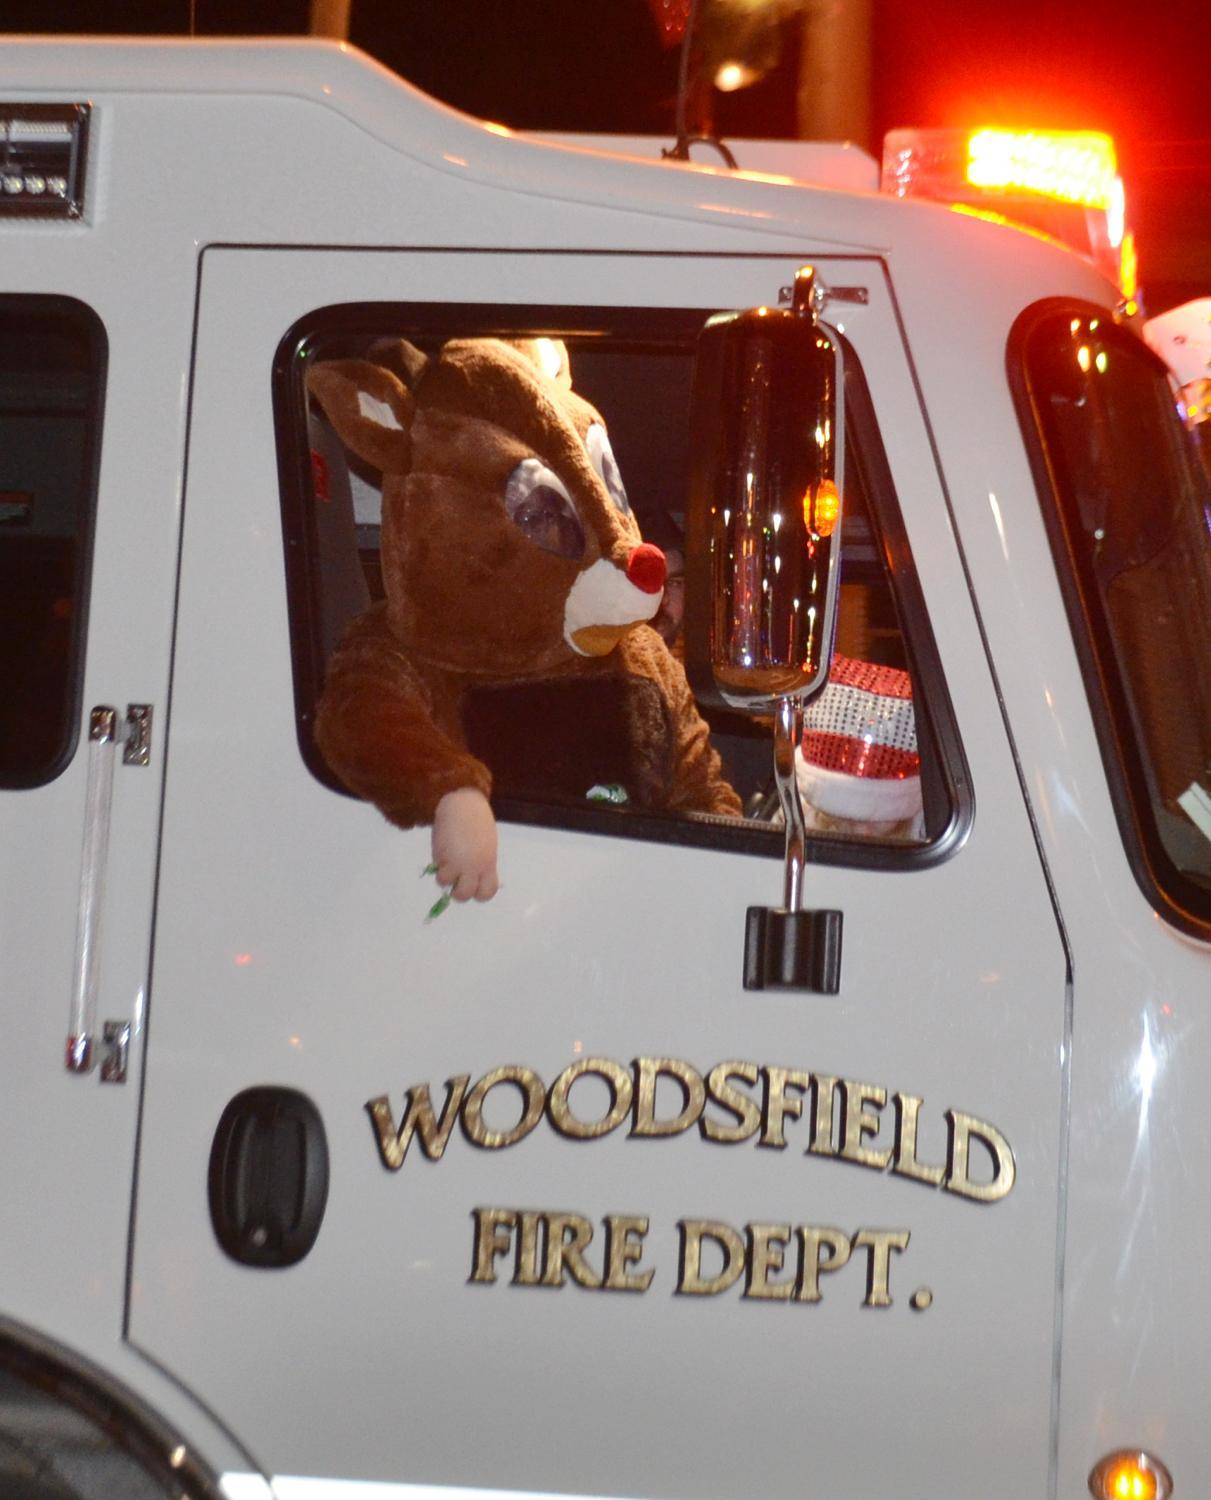 Rudolph tosses candy out of his sleigh for the evening, a Woodsfield Fire Truck.